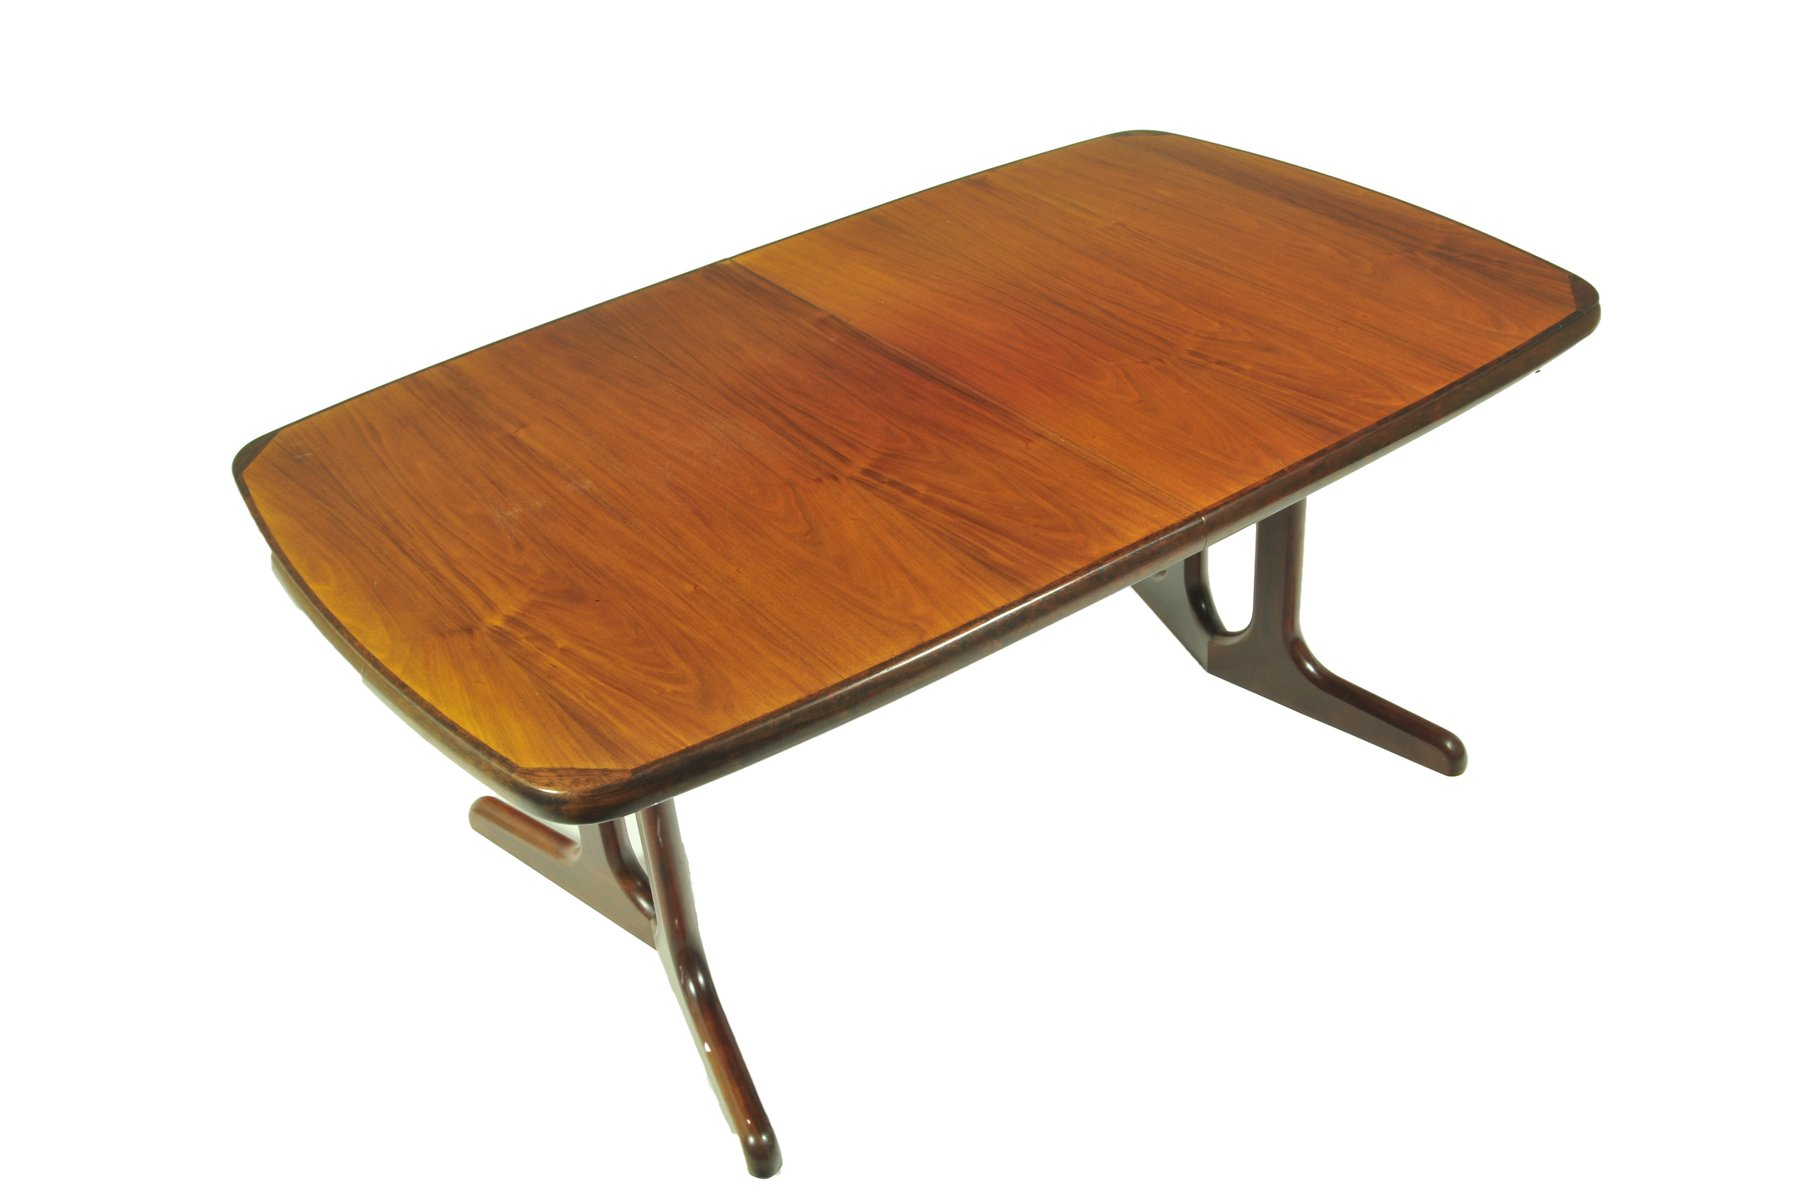 Vintage Danish Rosewood Extendable Dining Table From Skovby 5 1 754 00